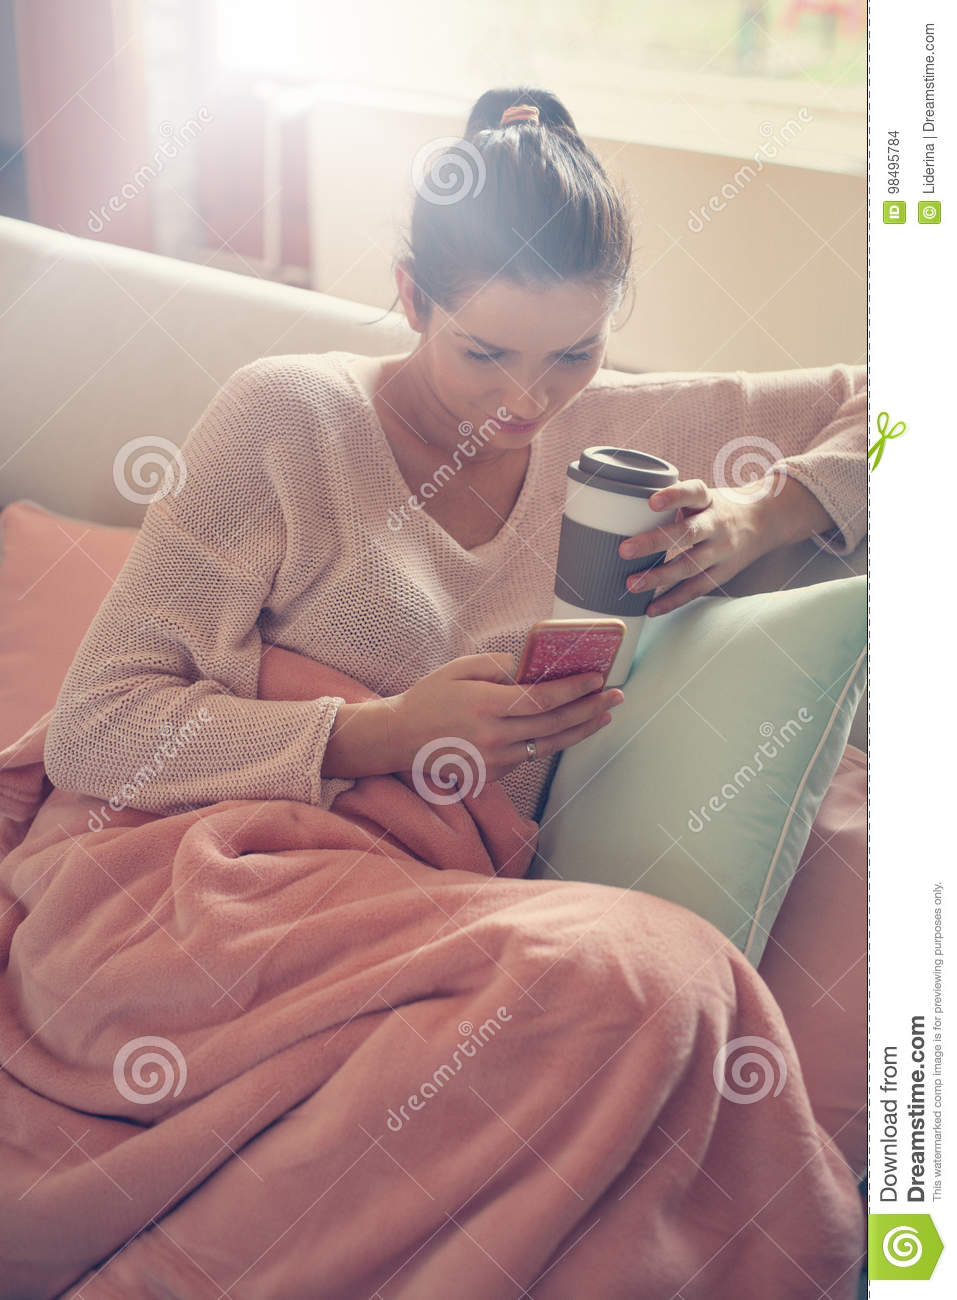 Woman using a mobile phone at home.